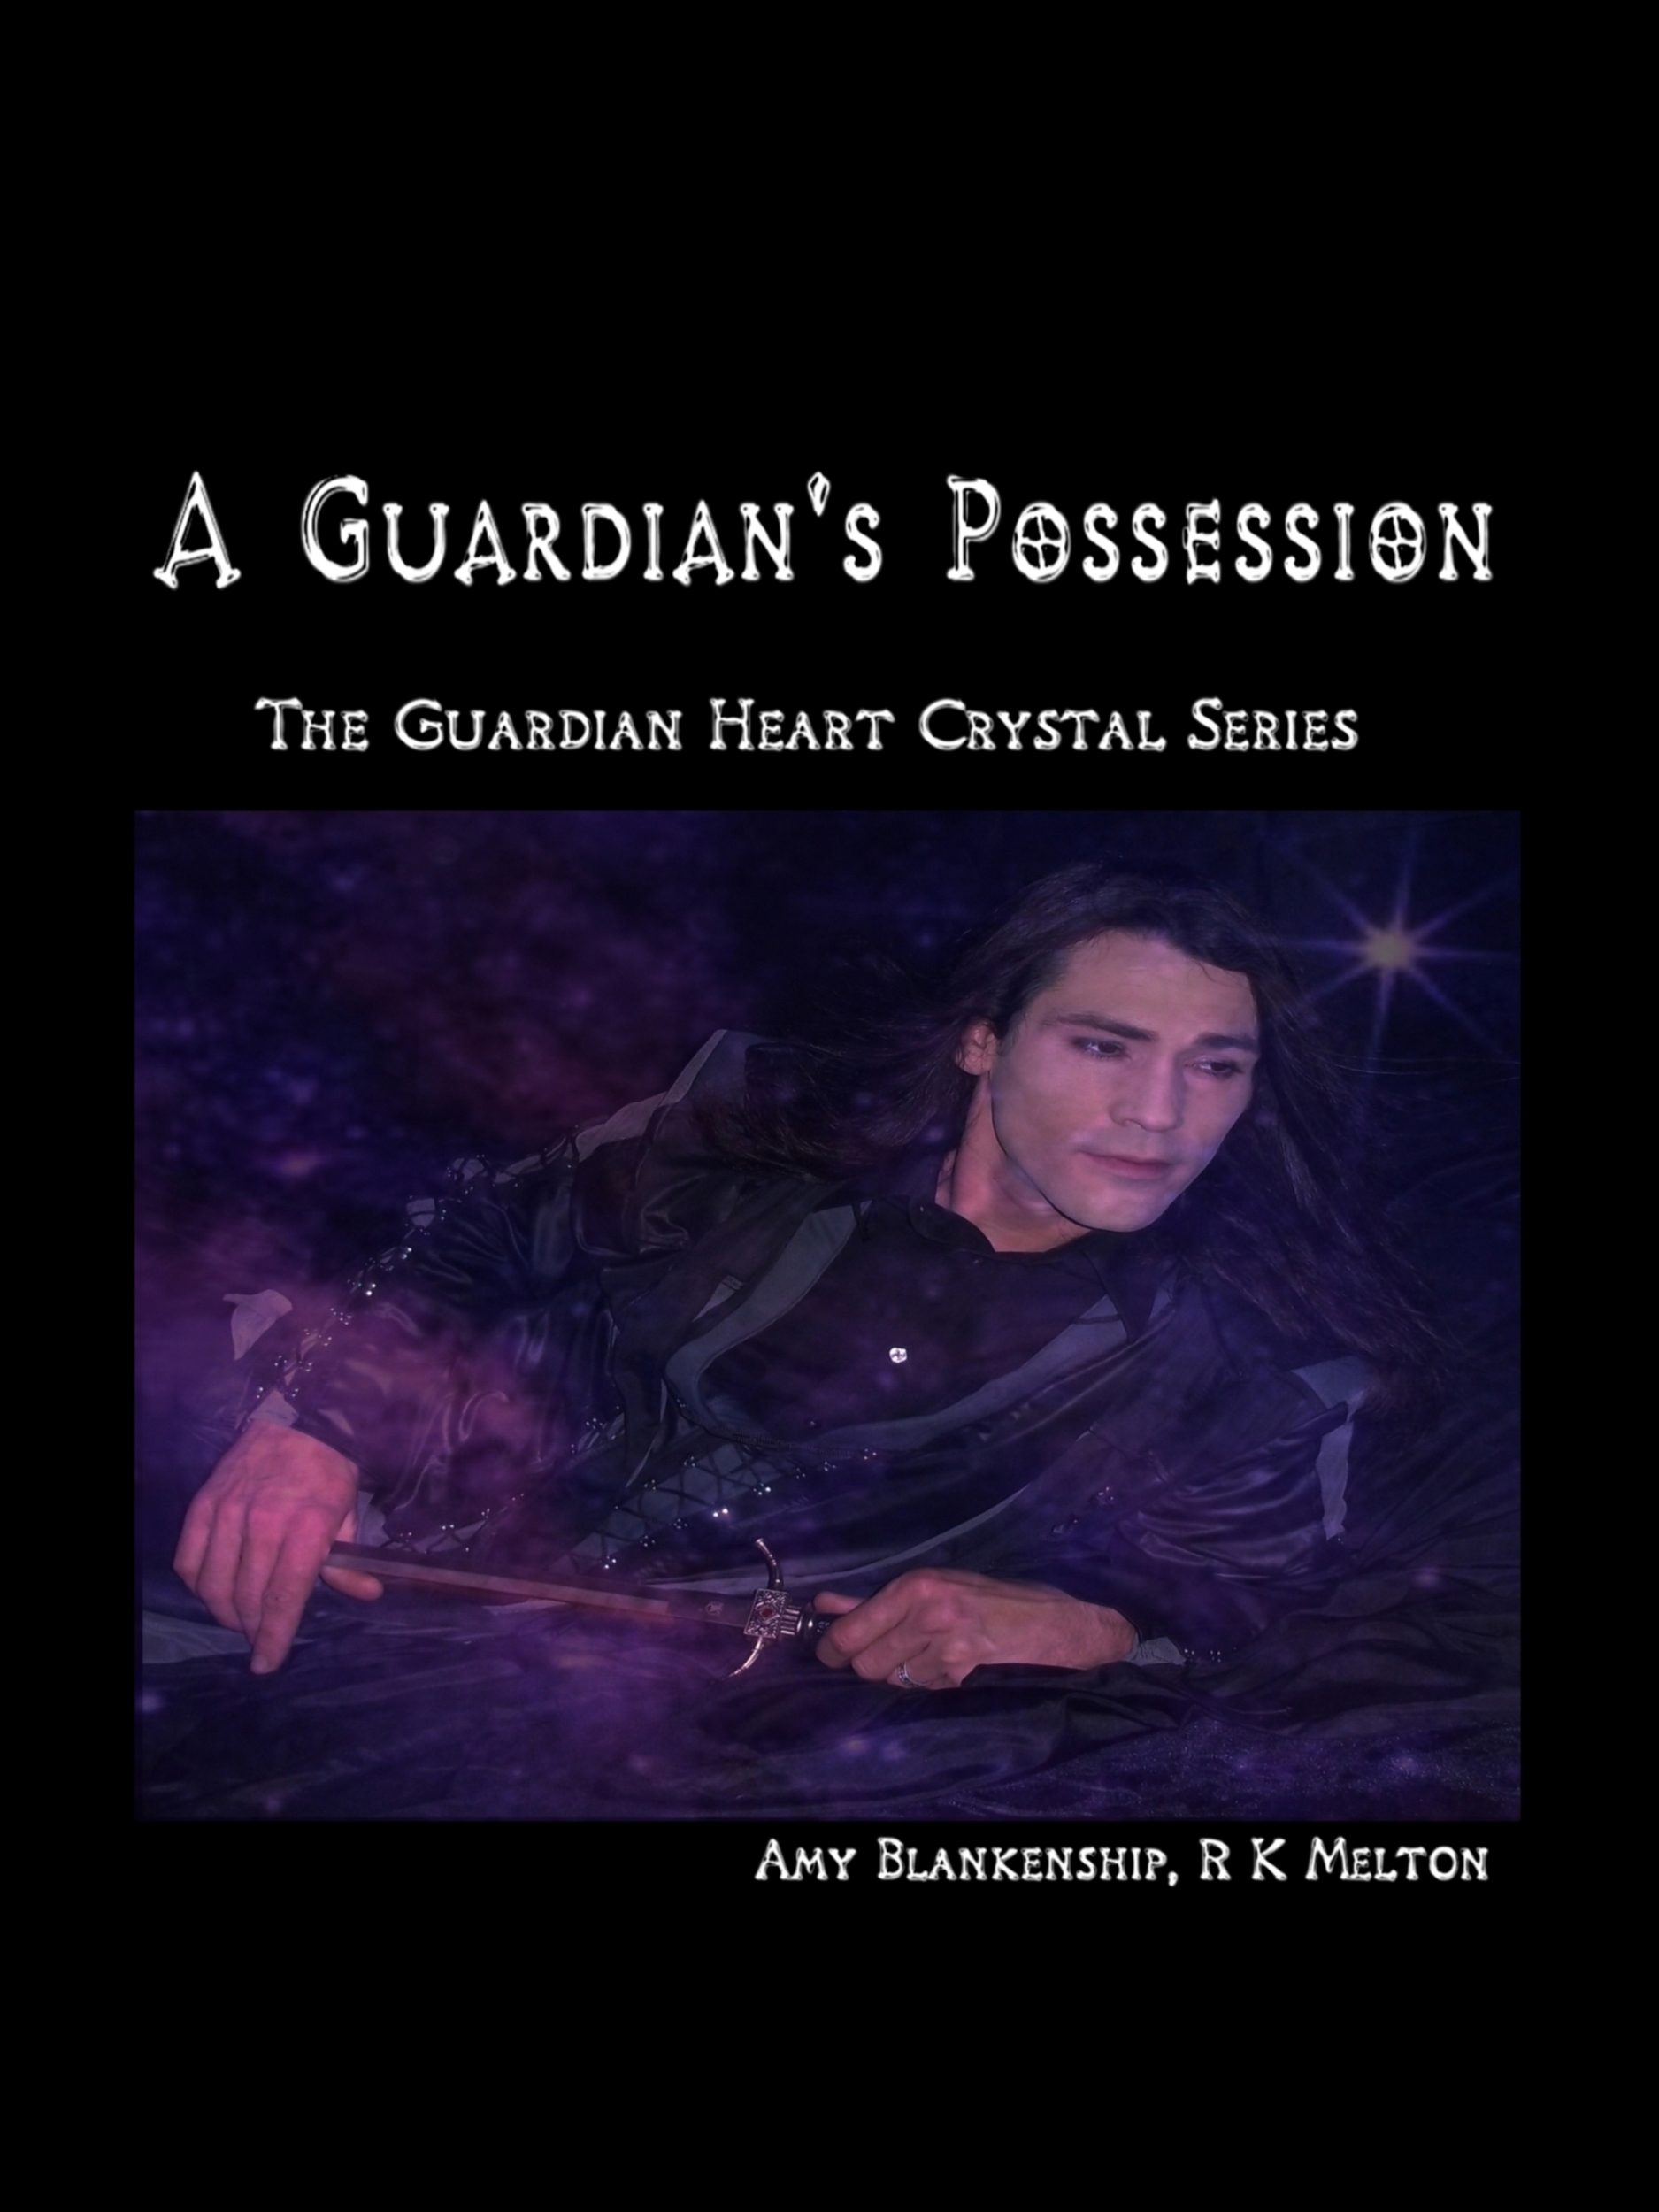 Amy Blankenship A Guardian's Possession carnal possession